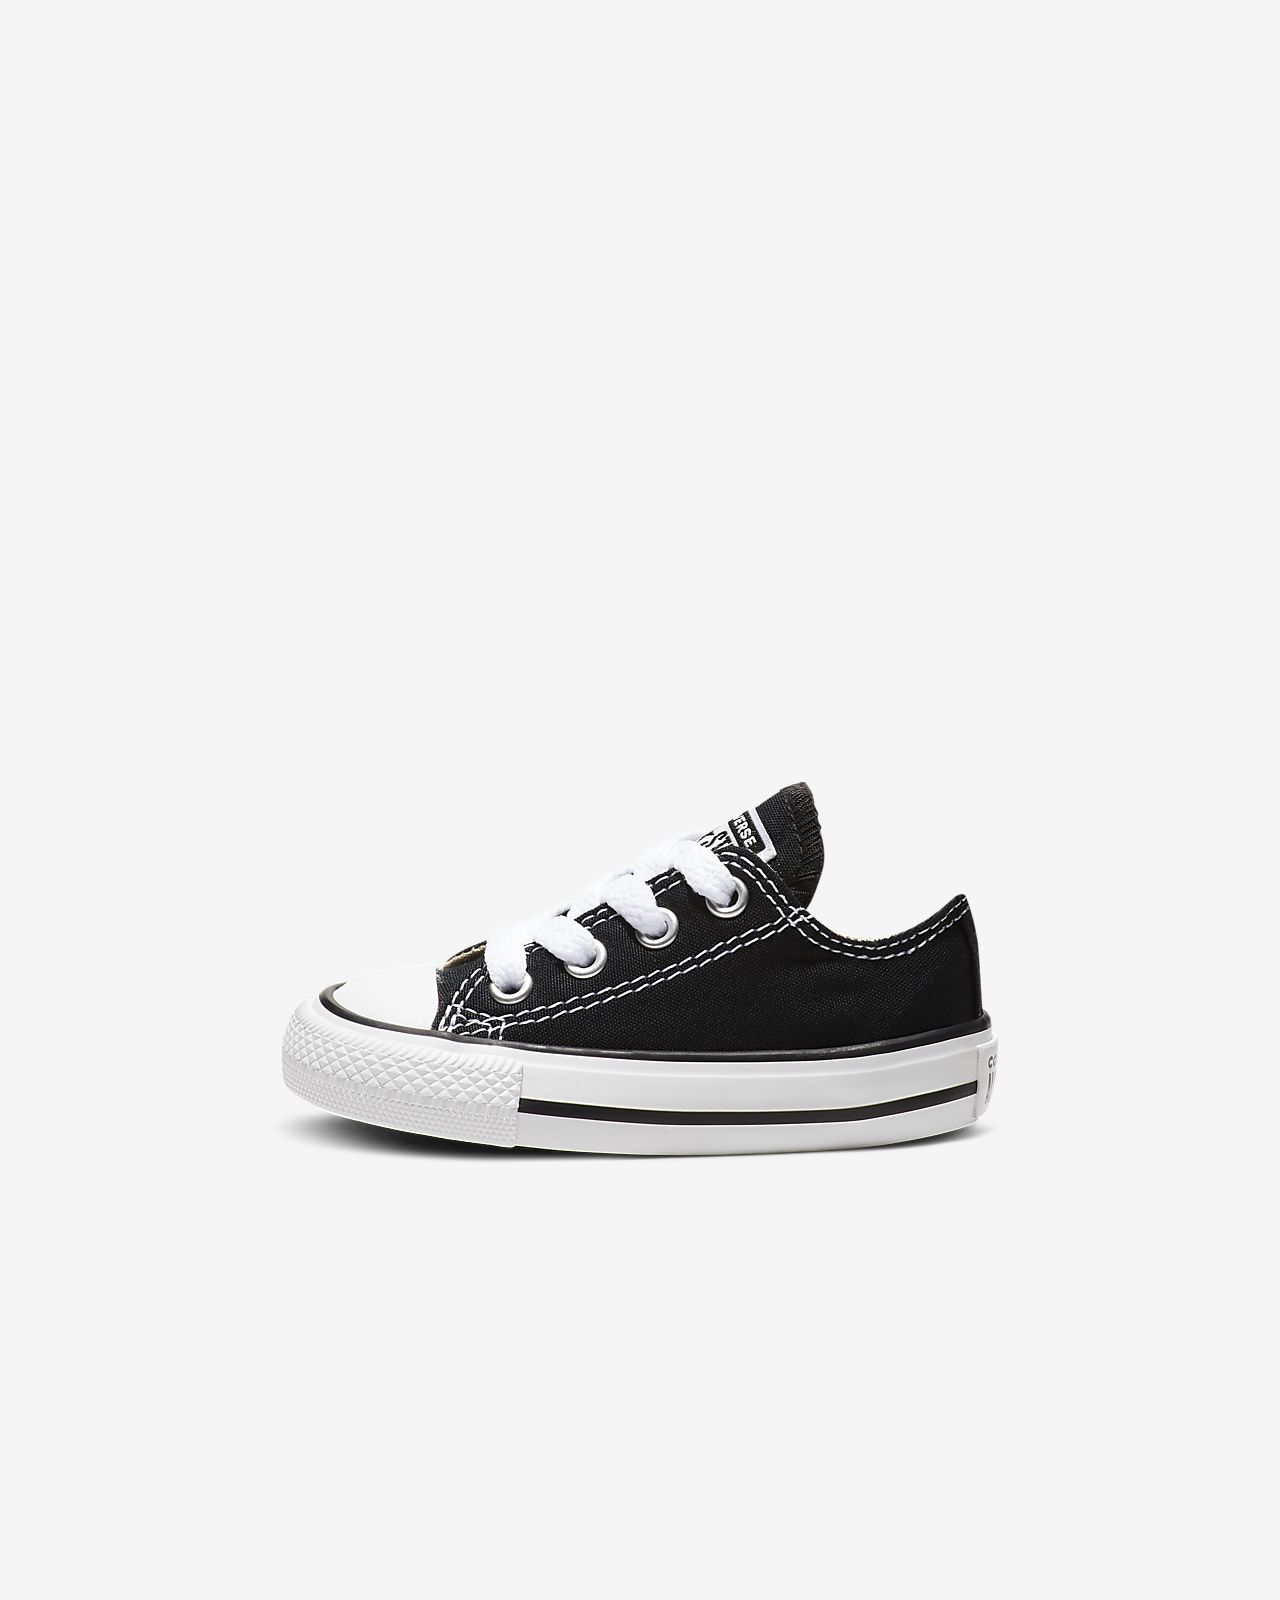 dbd7ee5e70b Converse Chuck Taylor All Star Low Top Infant Toddler Shoe. Nike.com